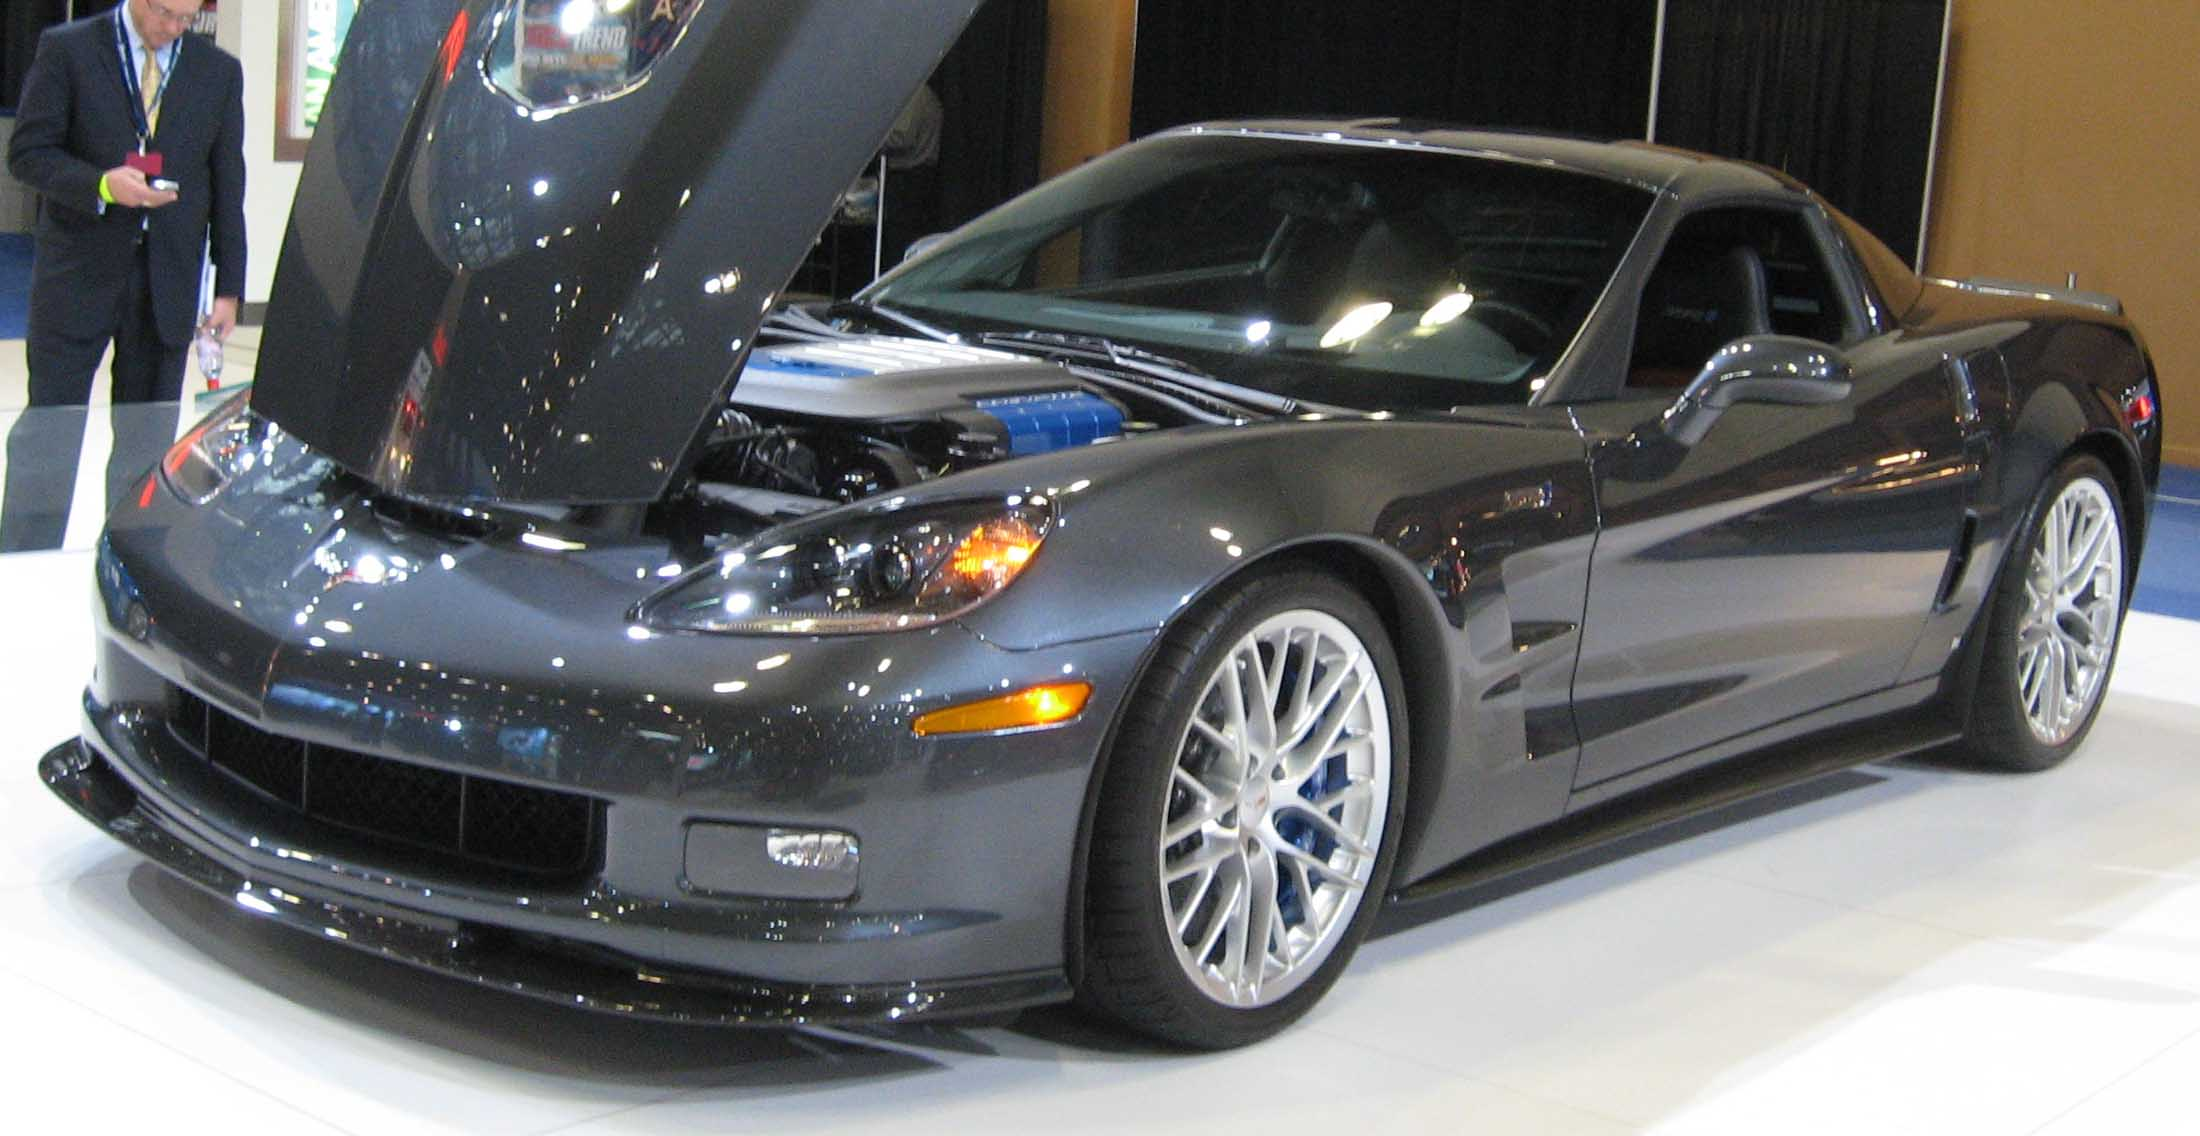 File:Chevrolet Corvette ZR1 NY